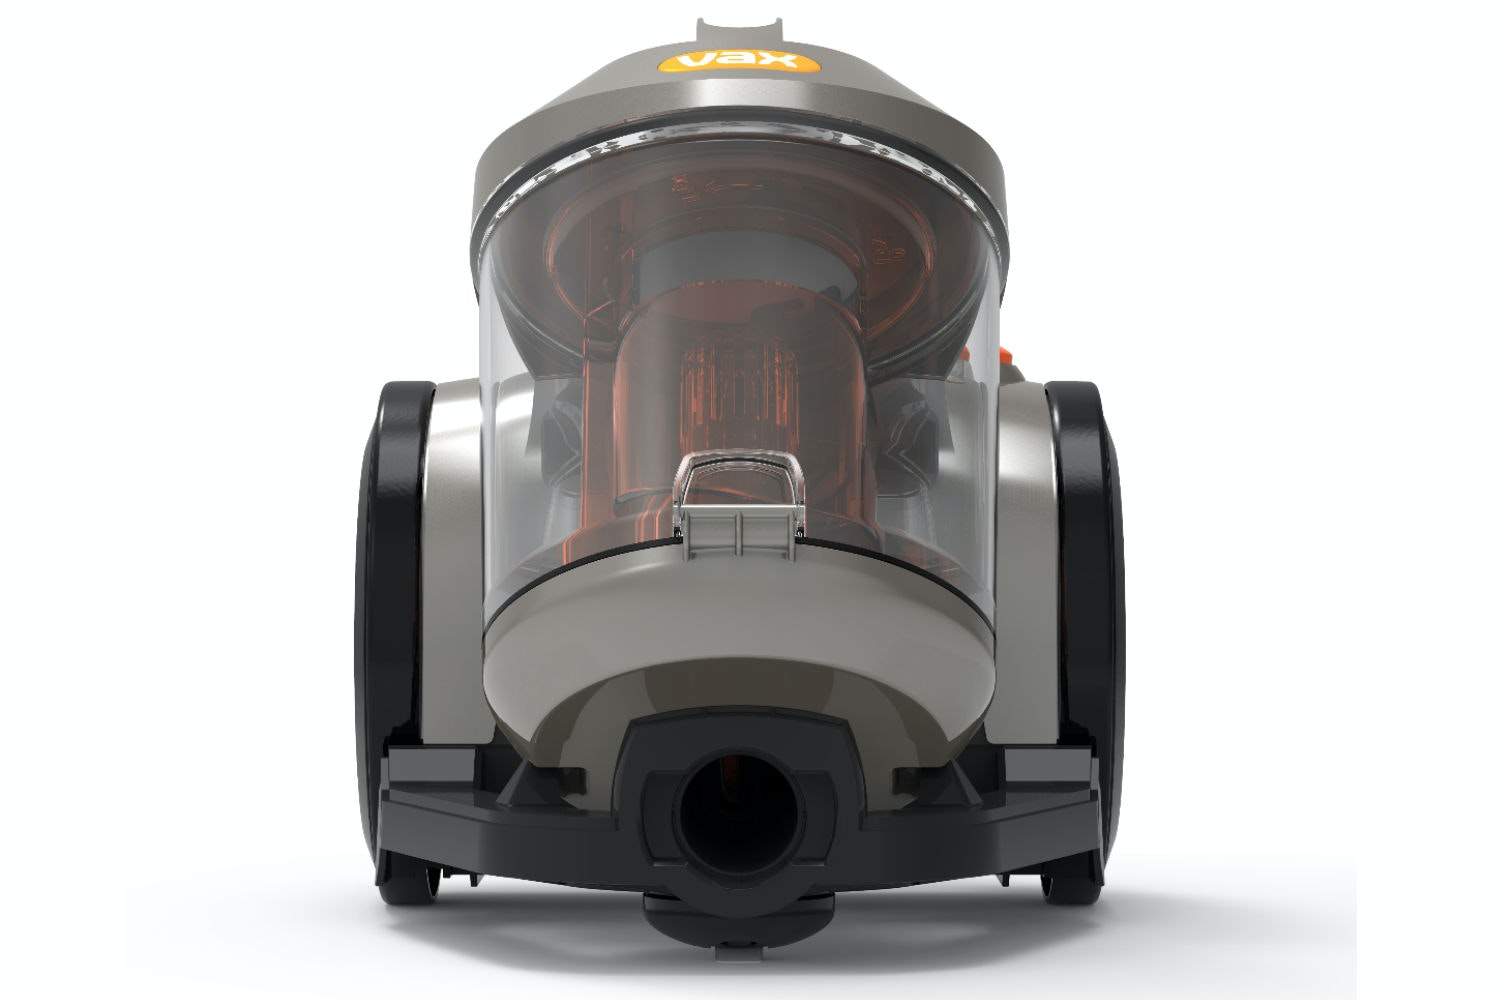 vax-power-4-cylinder-vacuum-cleaner-C85-P4-BE